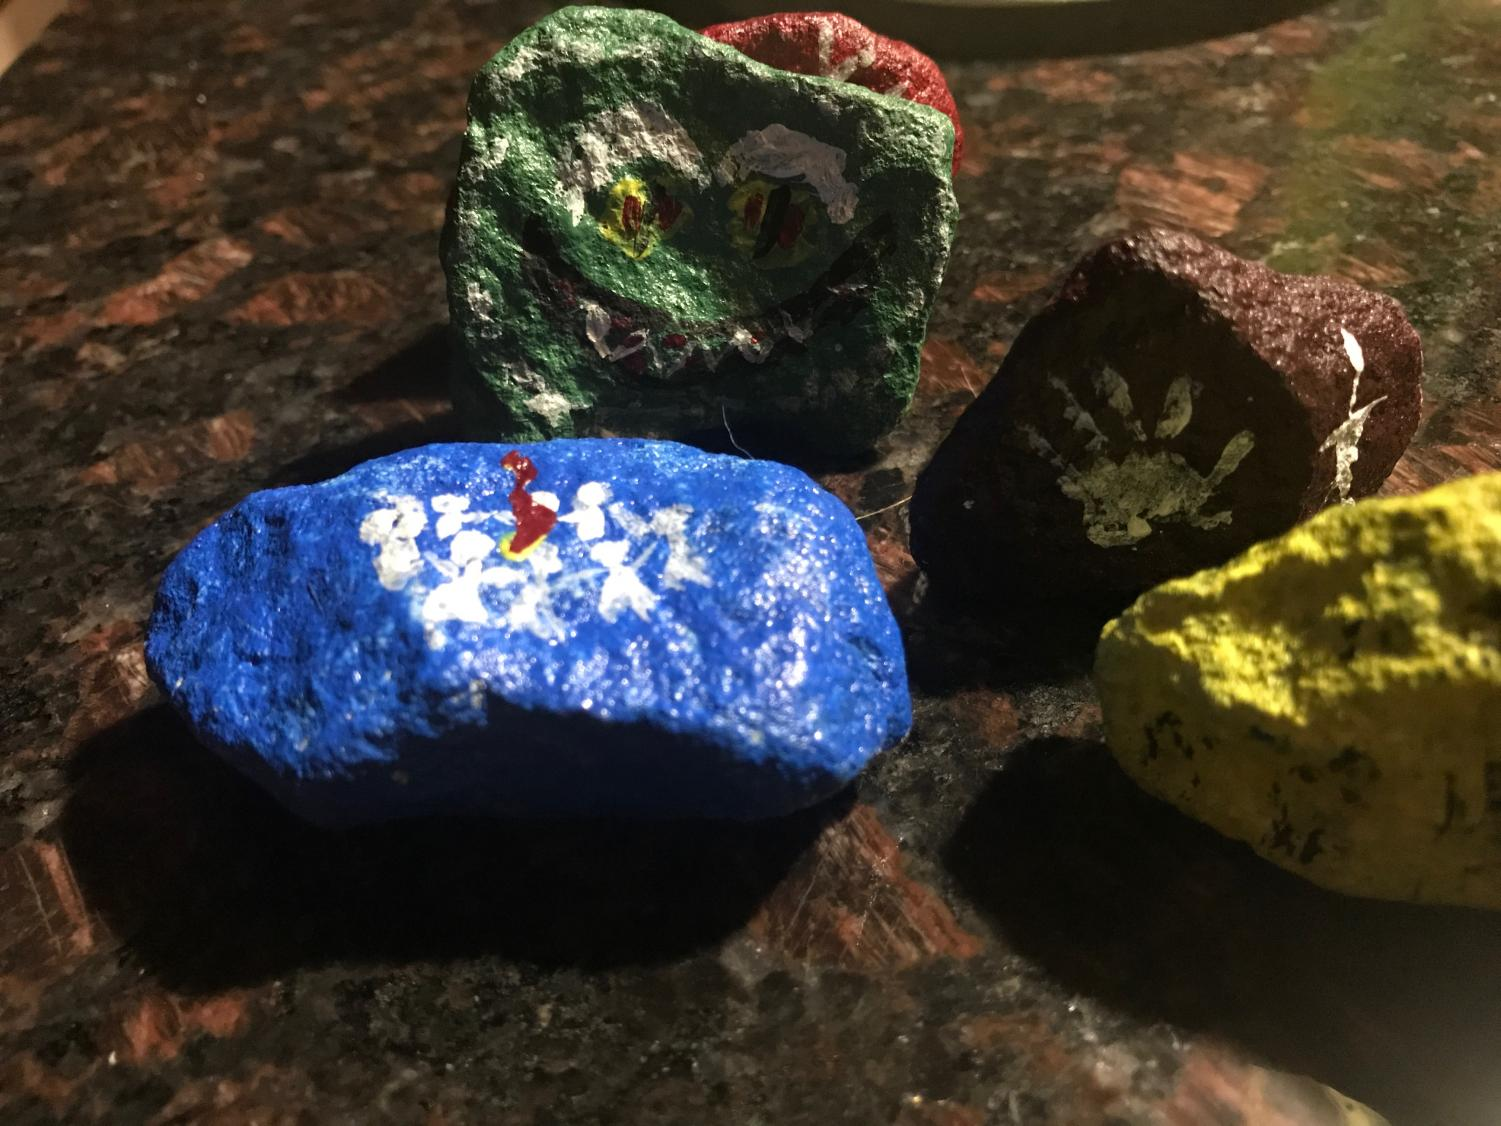 The glowing rock monster path makes  for outdoor Halloween decorations.